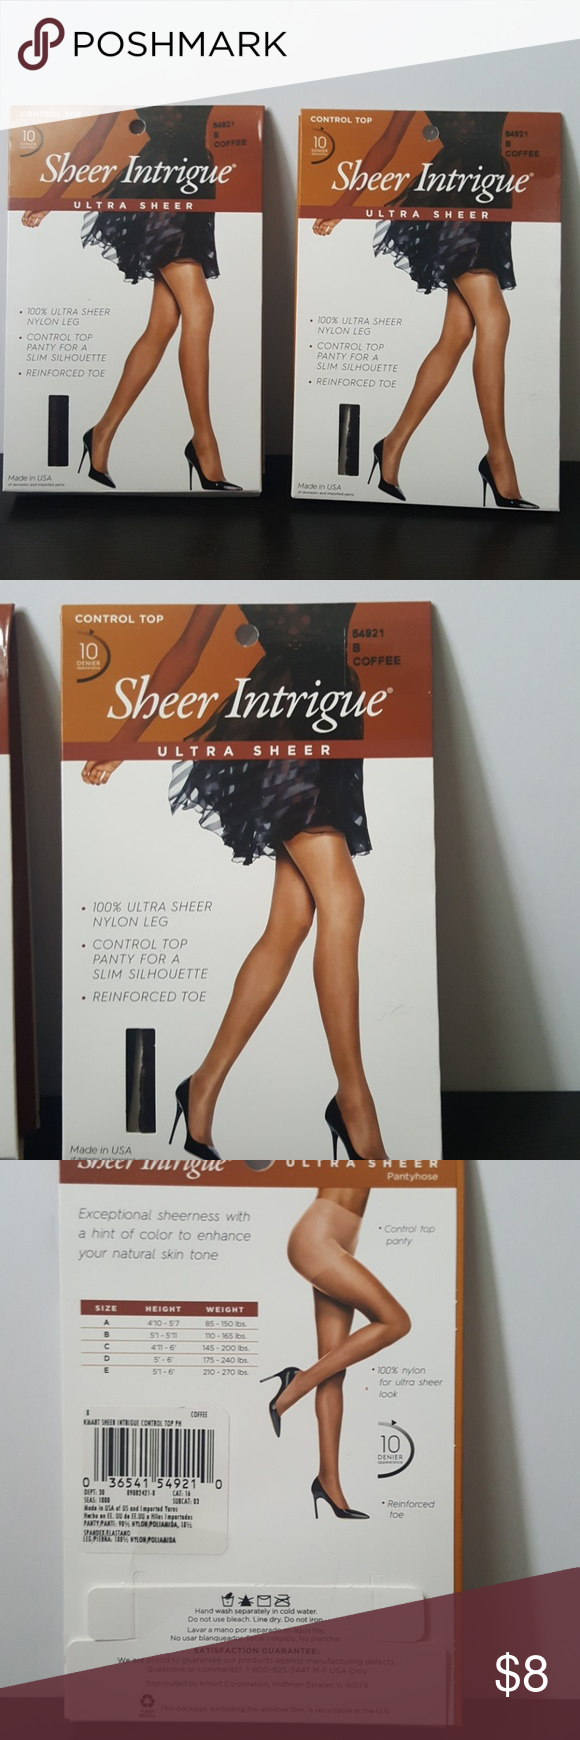 cfe5a3366bb NWT Sheer Intrigue Hosiery x 2 Pantyhose Coffee This is a pair of  brand-new